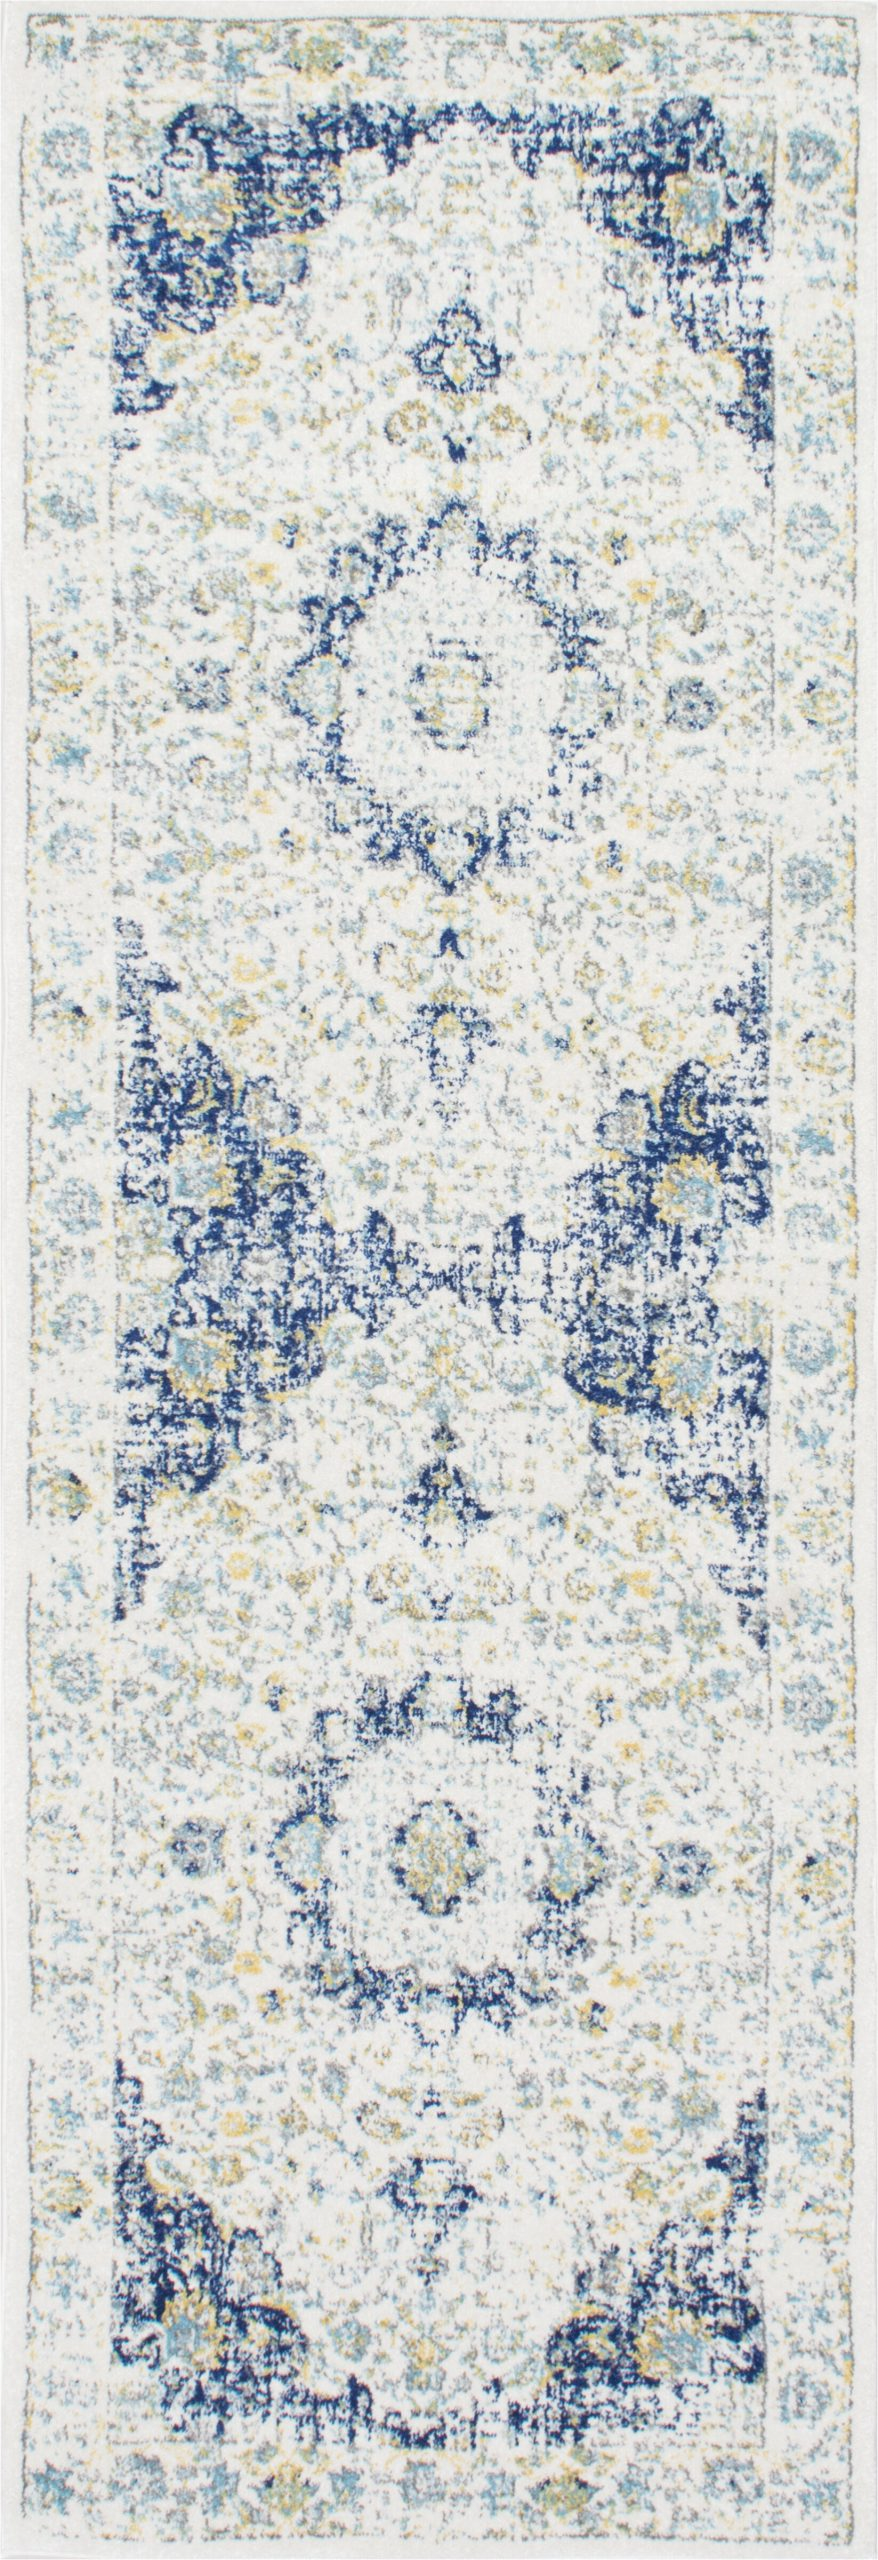 blue runner area rugs c a1247 a1249